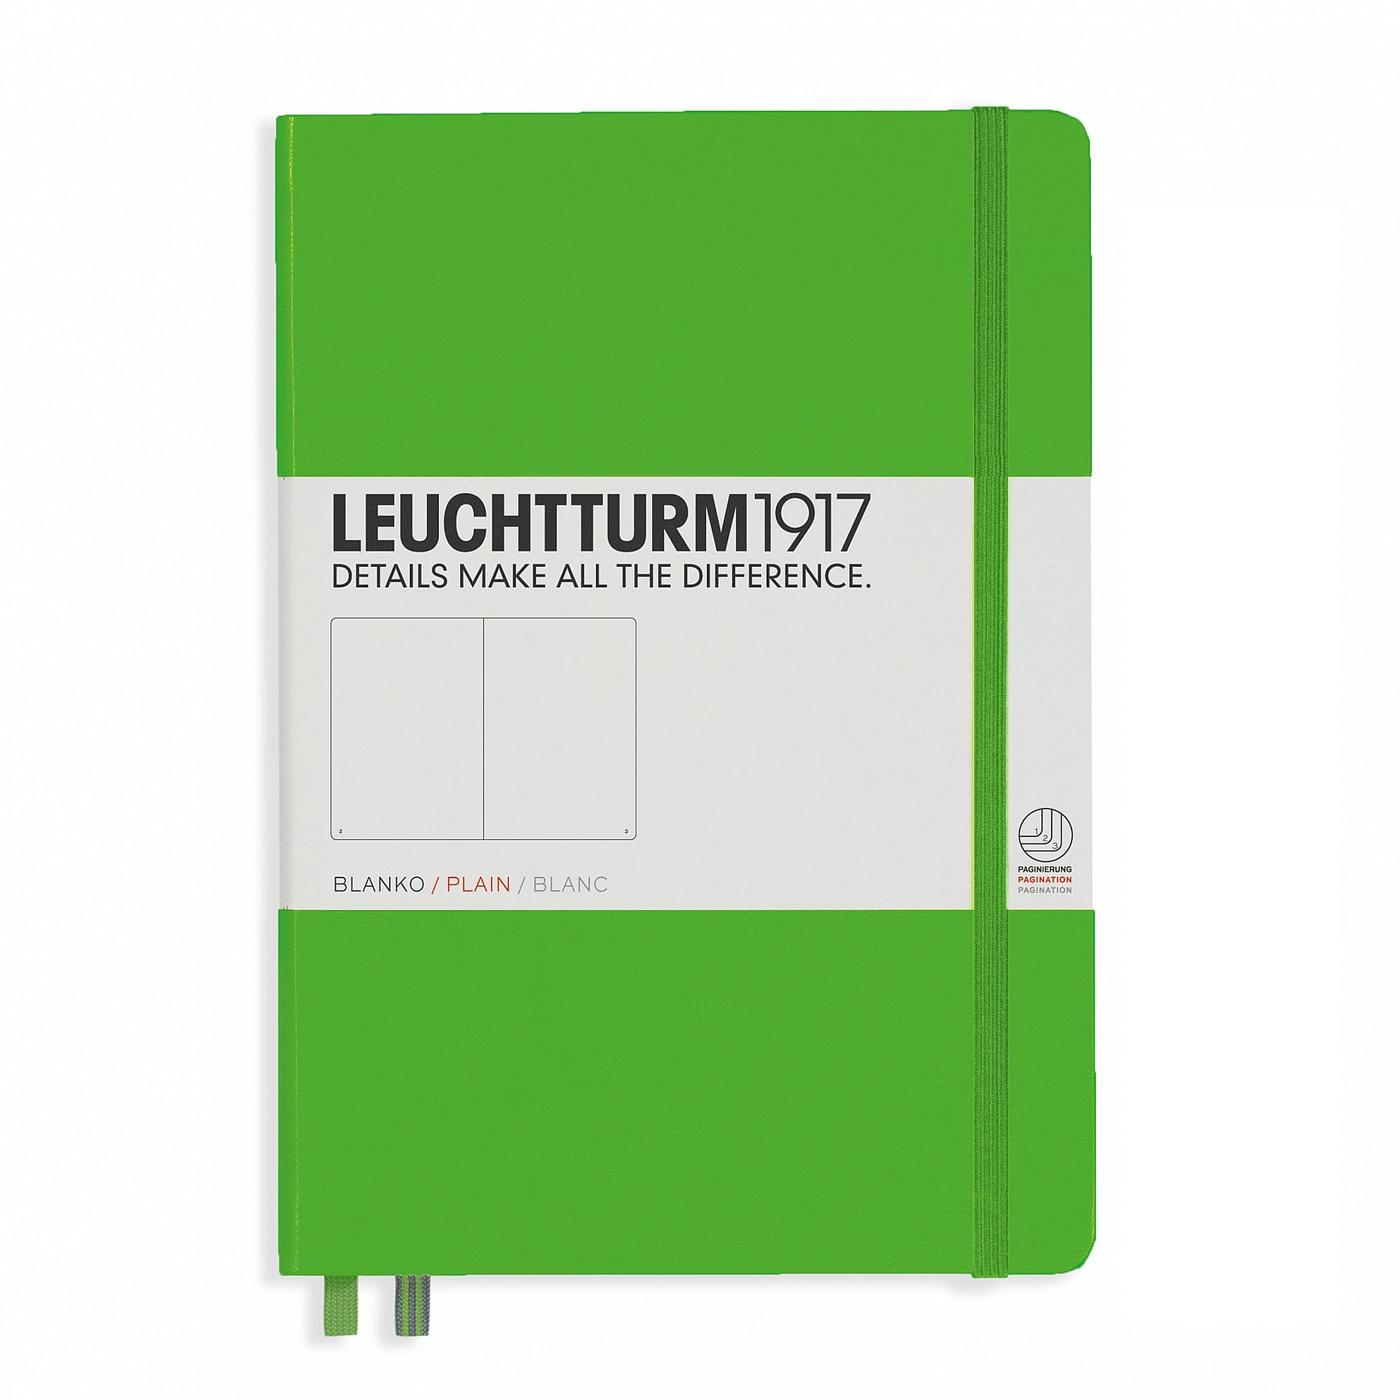 Leuchtturm 1917 A5 Medium Hardcover Notebook – Fresh Green – Plain